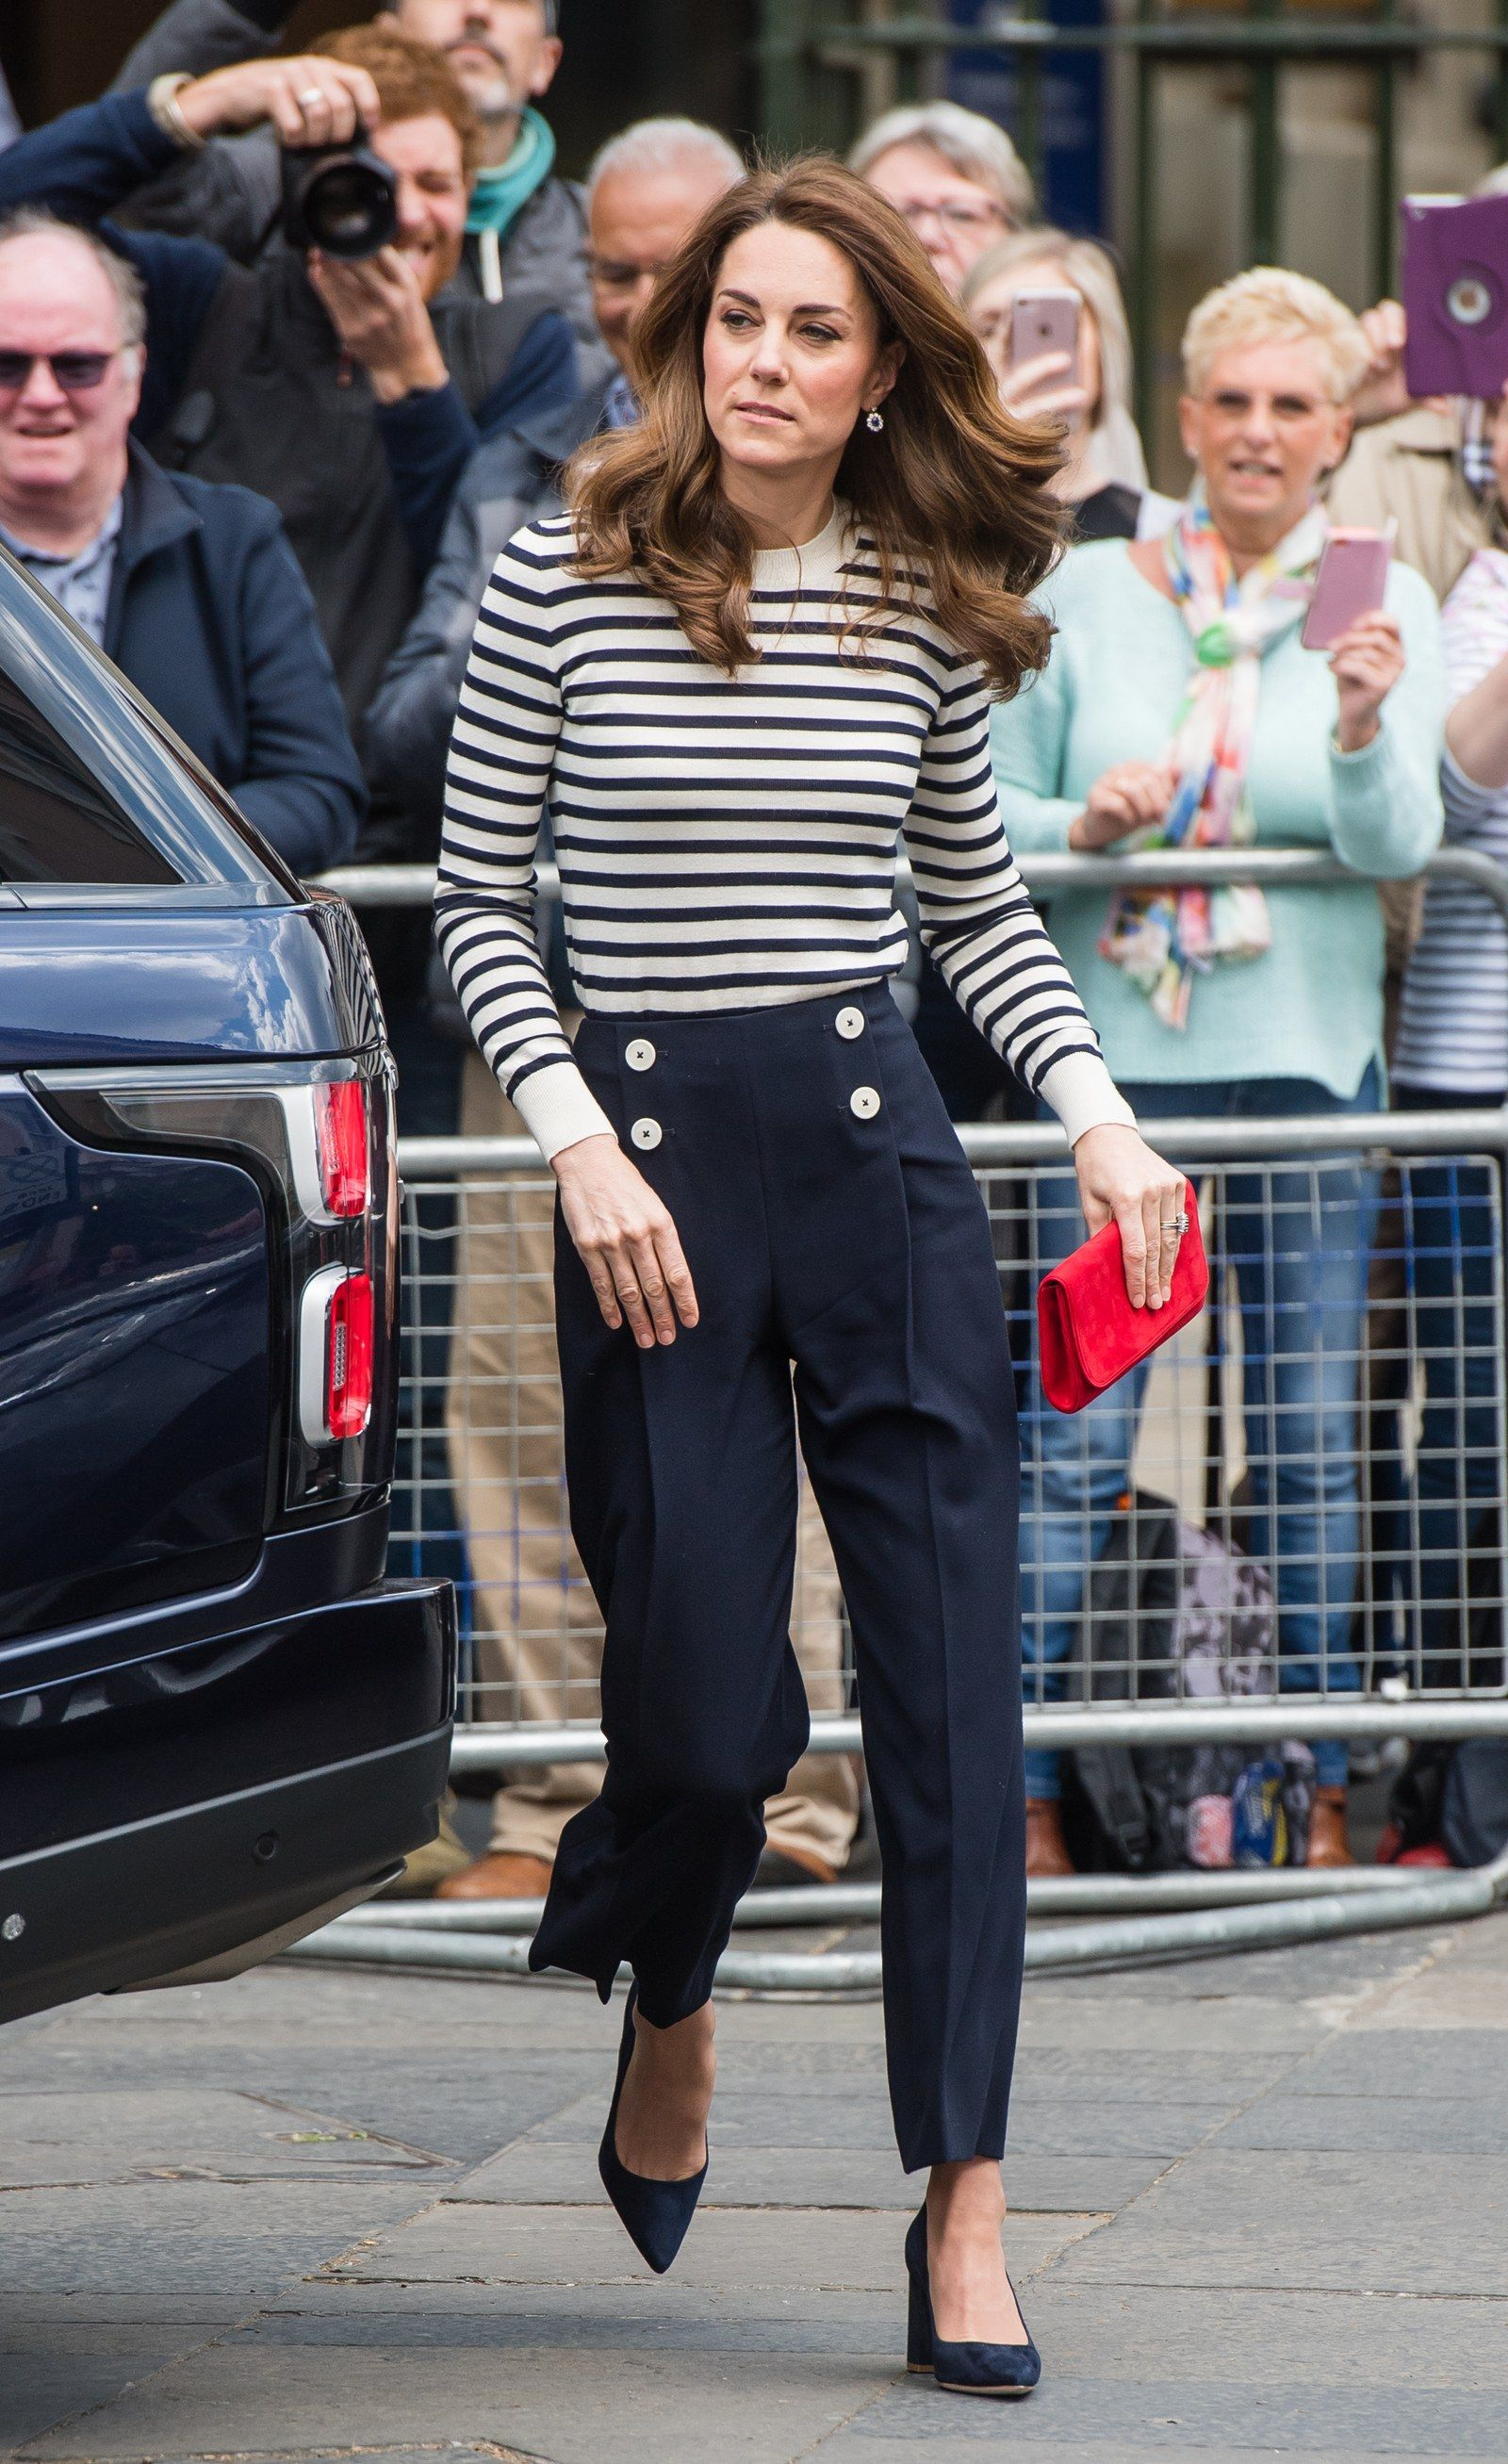 Kate Middleton Has a Royal Take on French Girl Style #frenchgirlstyle